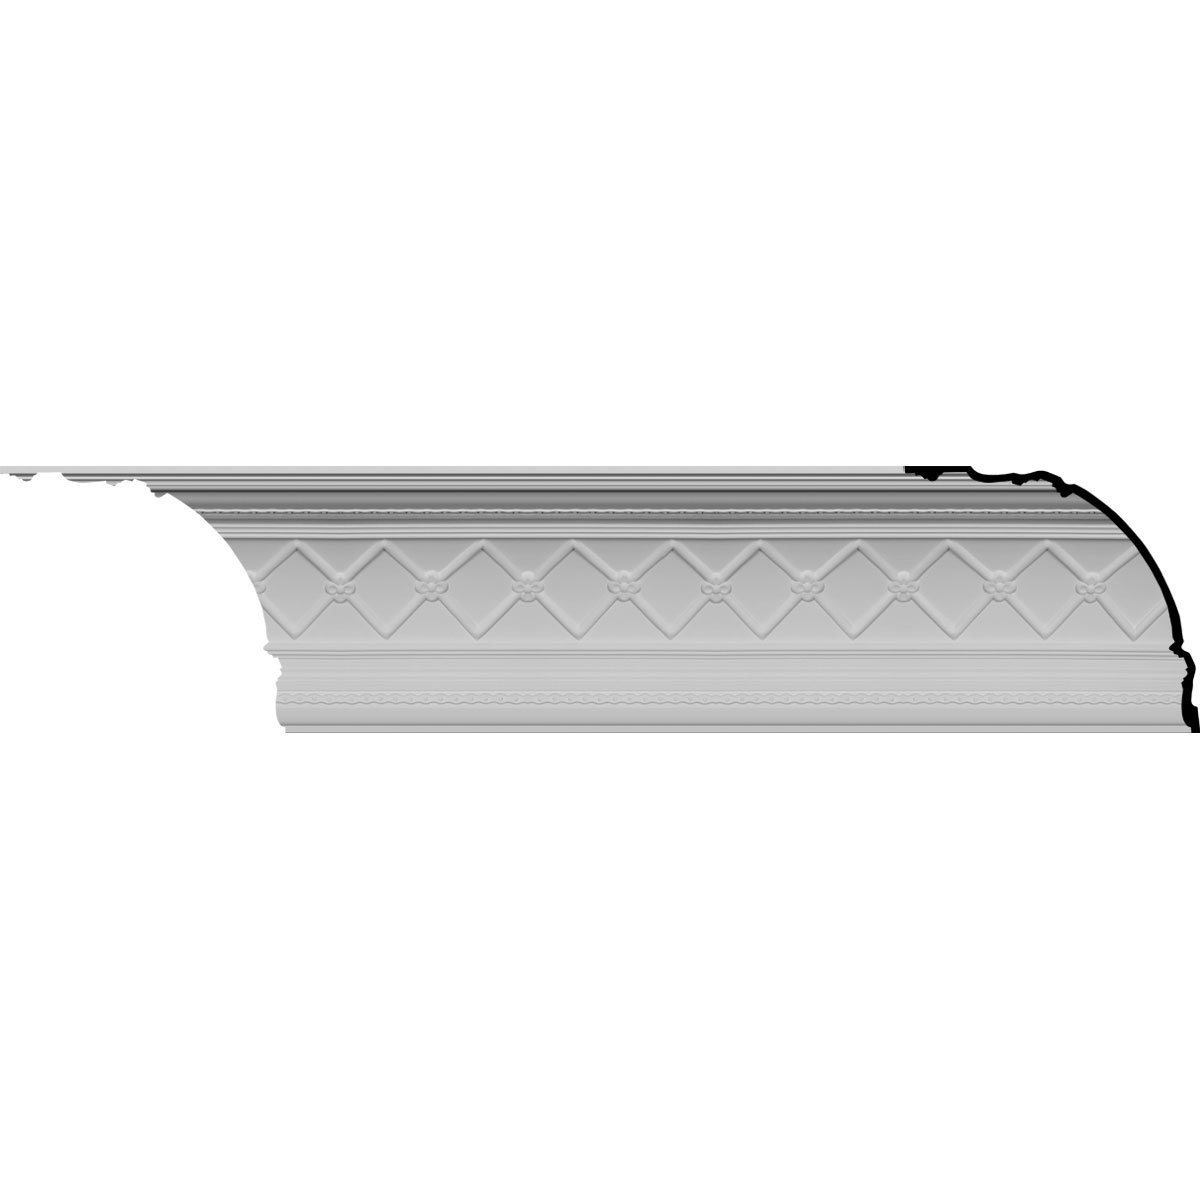 Ekena Millwork MLD18X16X24BR-CASE-12 18-1/4'' H x 16-3/8'' P x 23-7/8'' F x 82'' L Brighton Crown Molding (12-Pack)